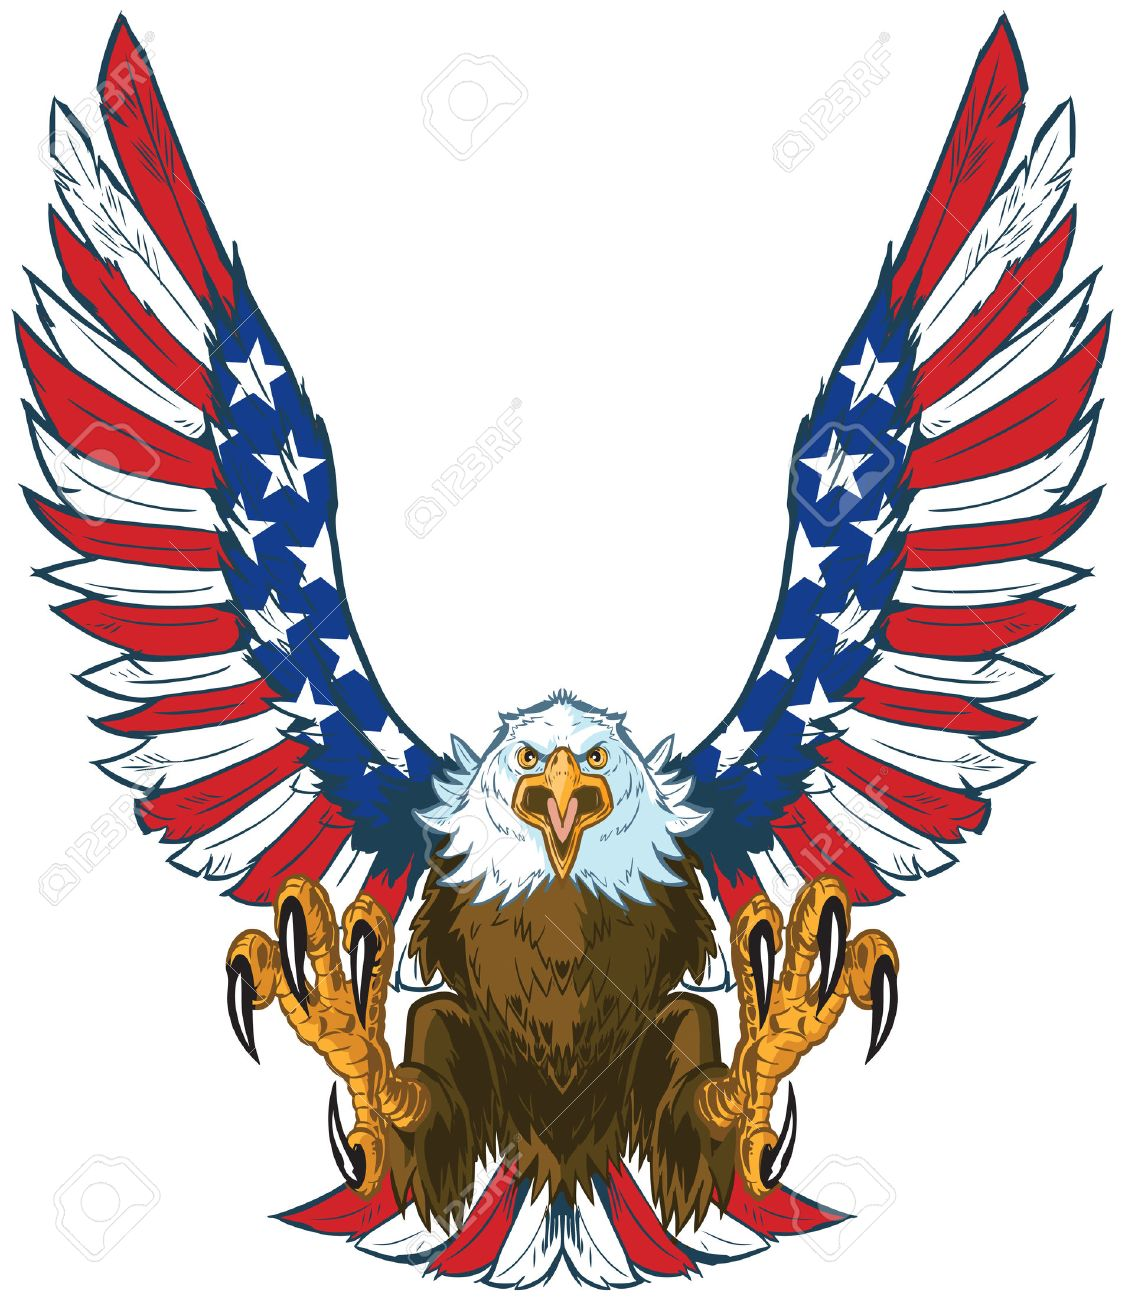 4 506 bald eagle stock vector illustration and royalty free bald rh 123rf com bald eagle clip art free bald eagle clip art images